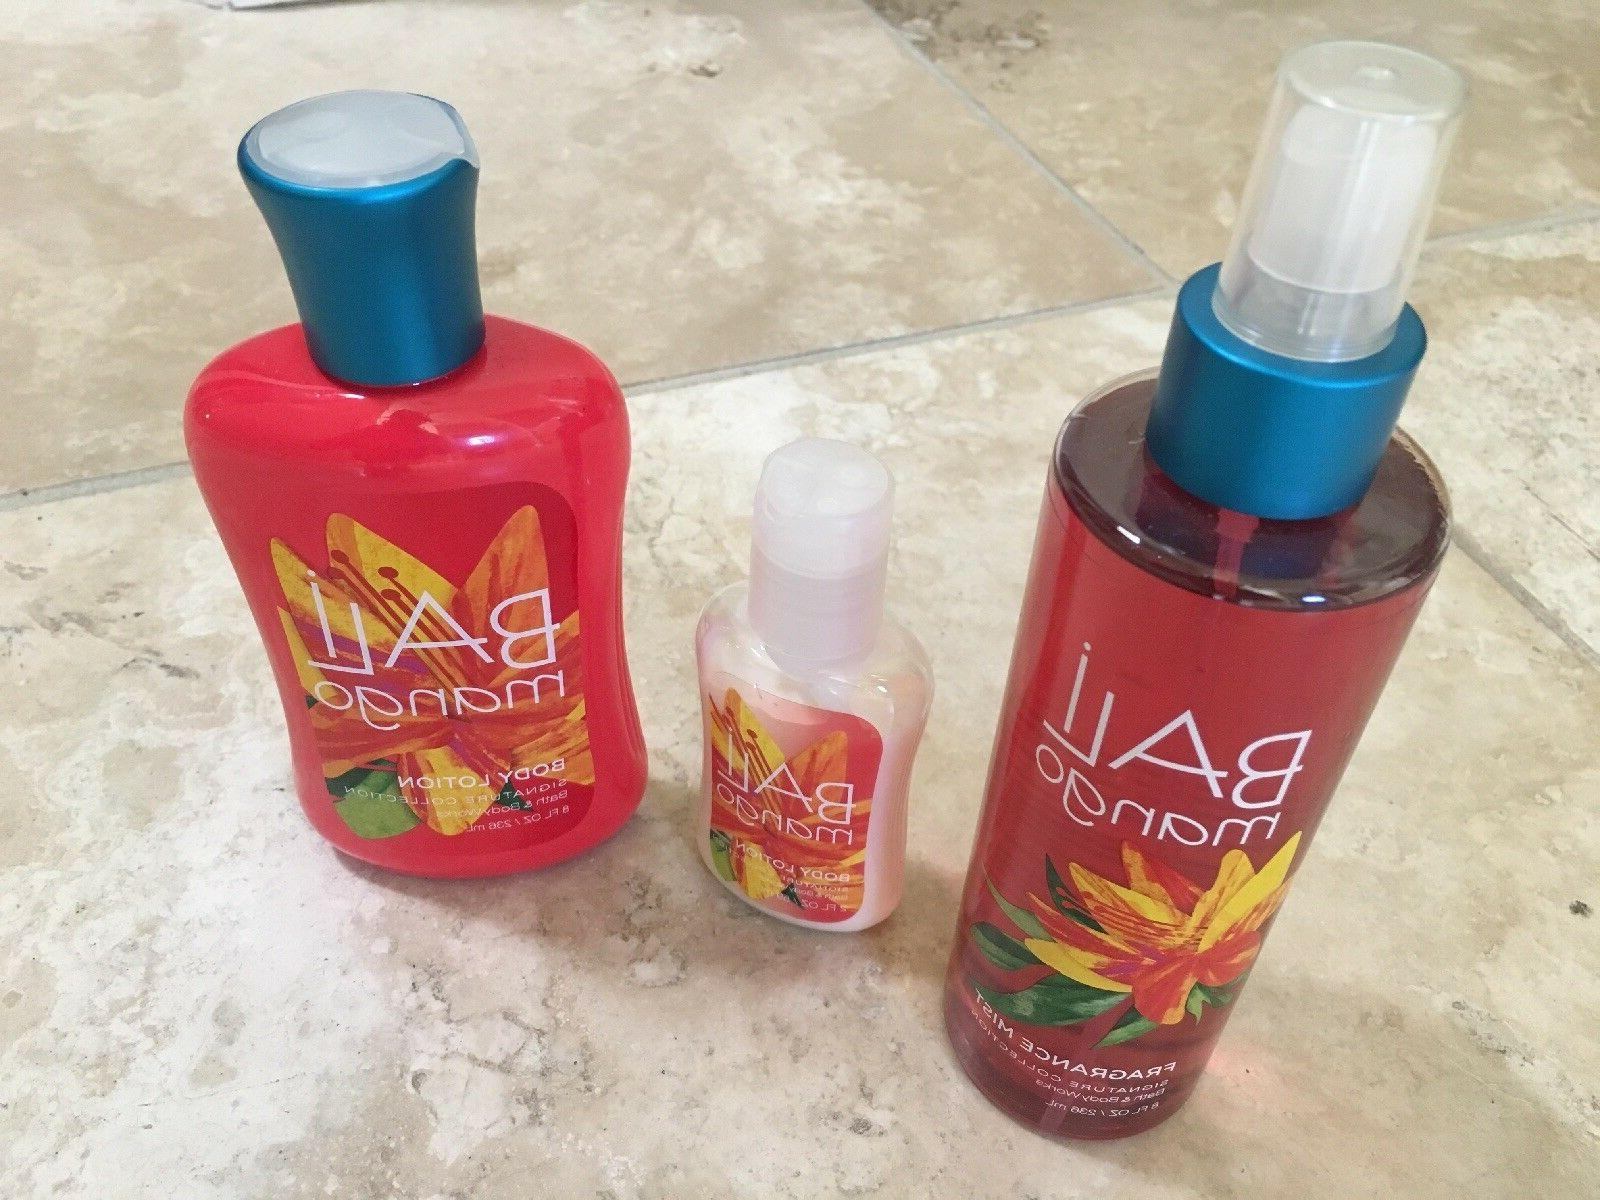 Bath and Body Works Bali Mango body fragrance spray, 2 lotio